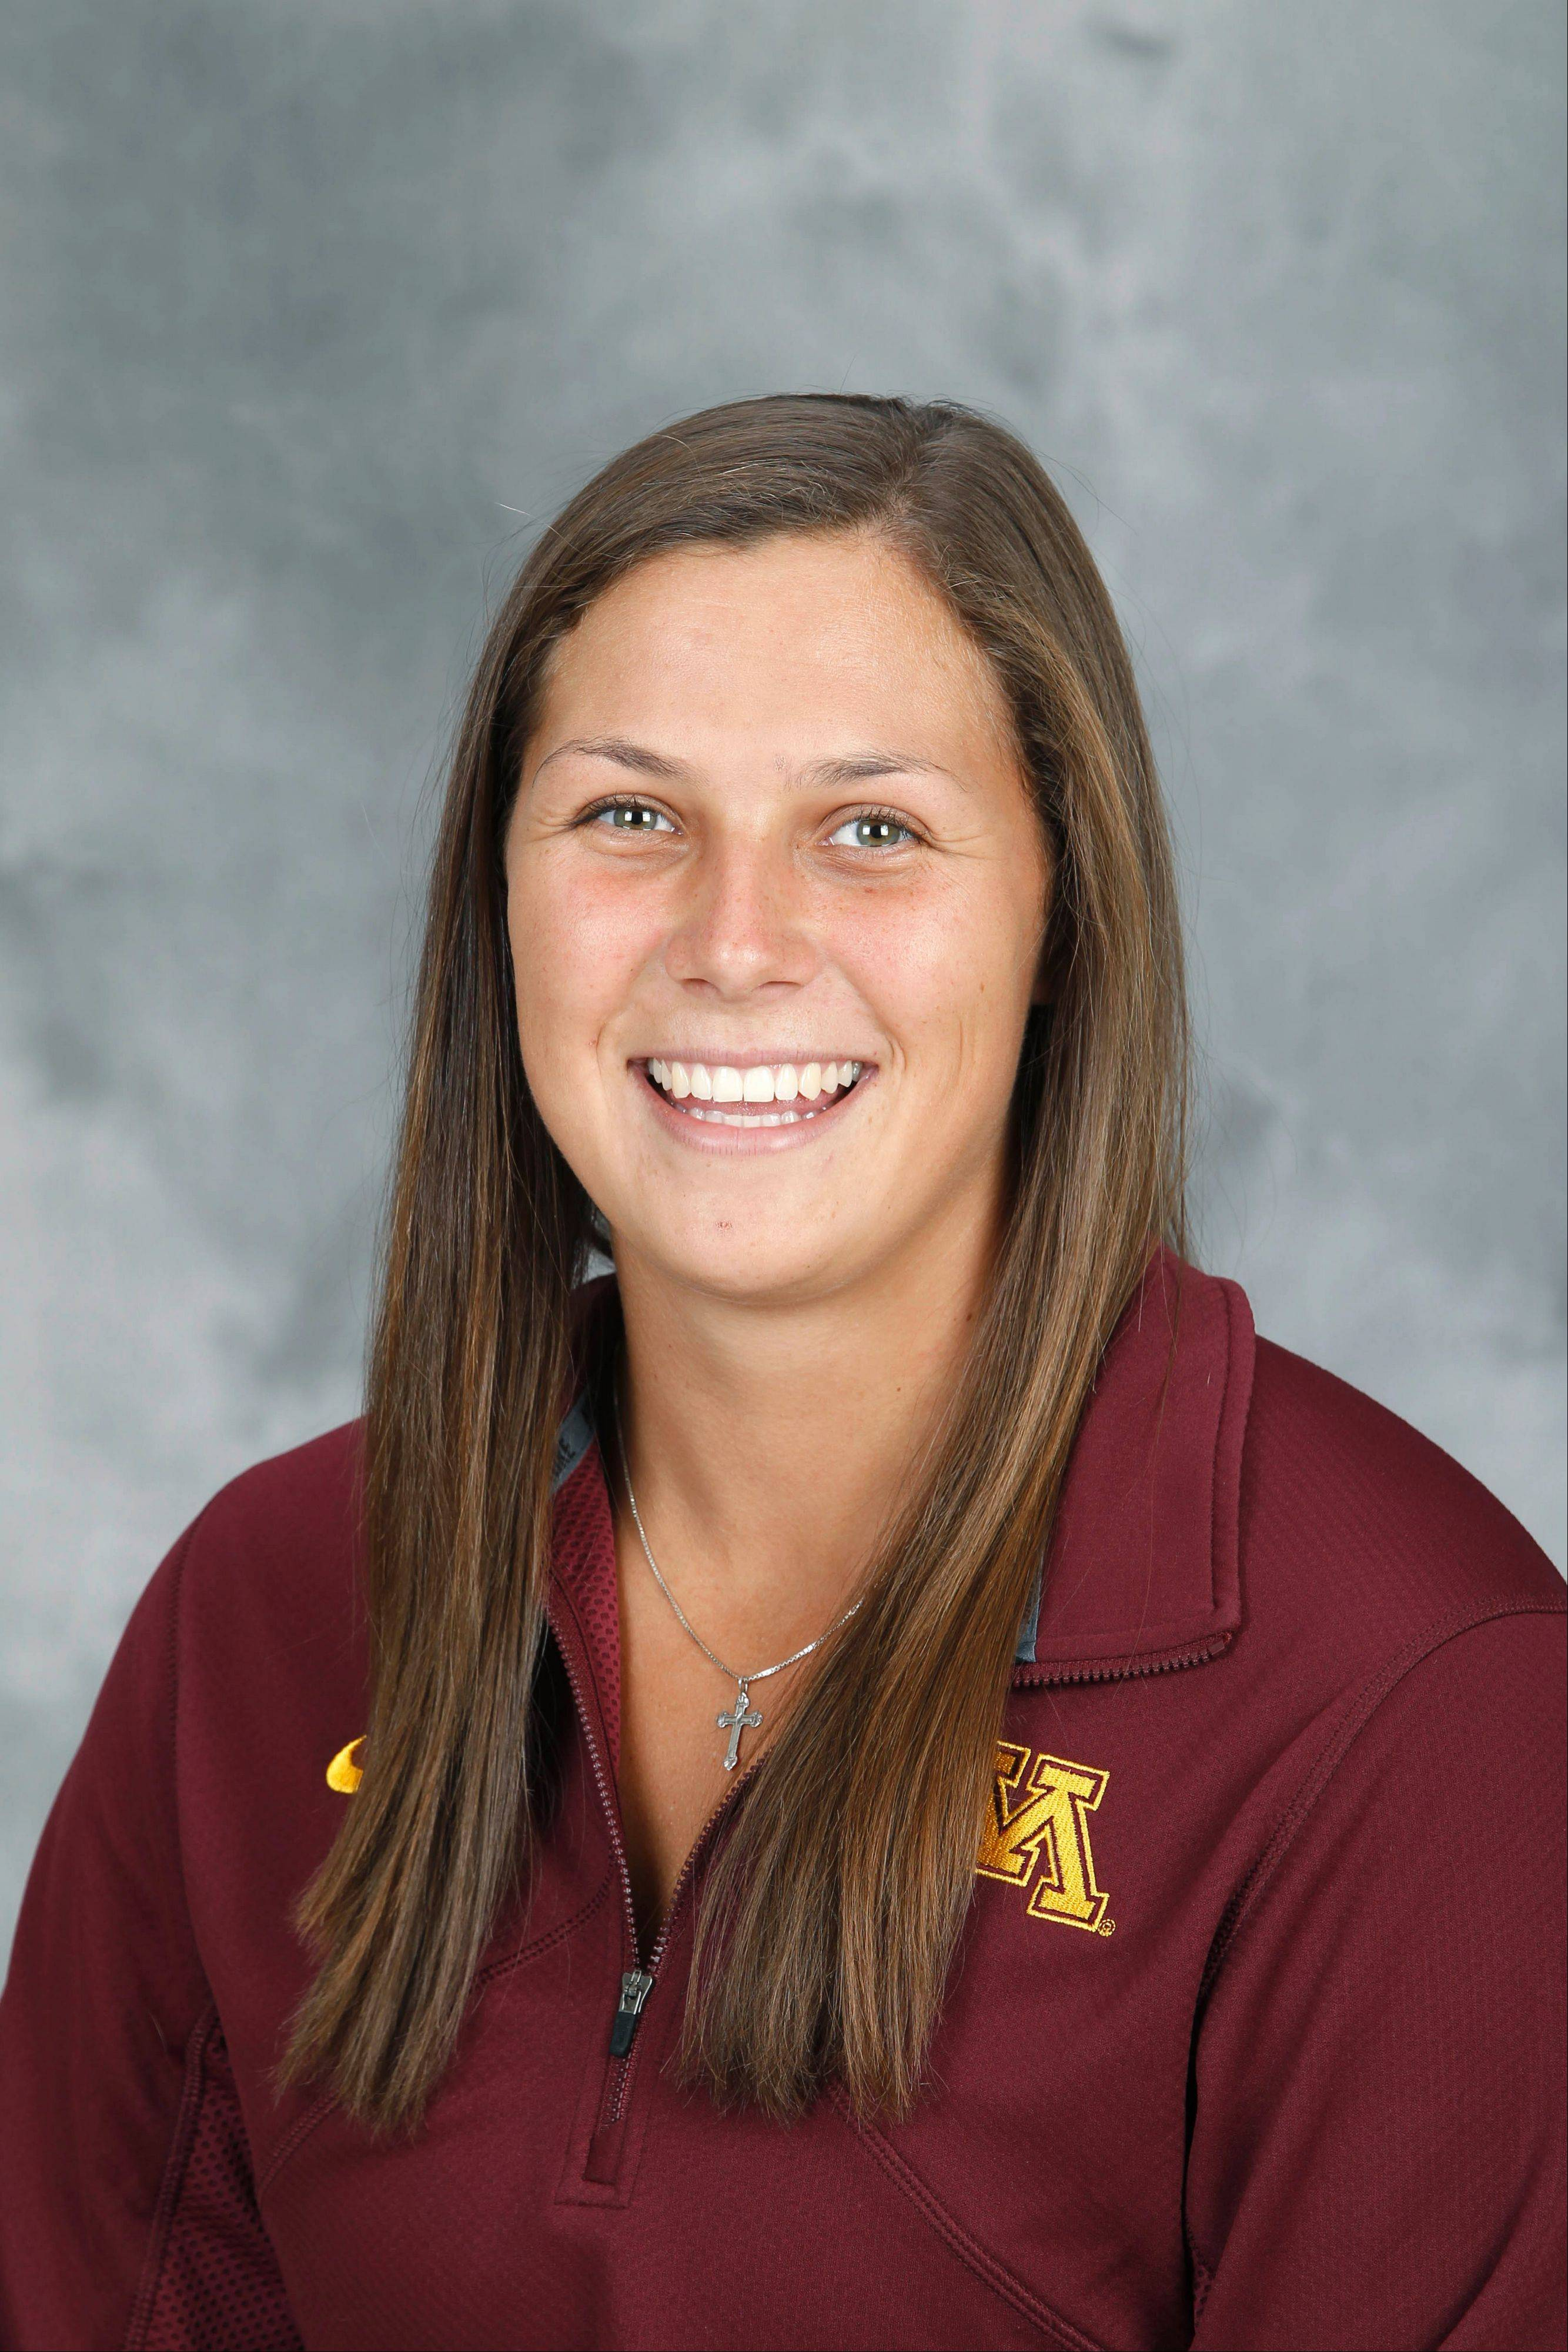 Buffalo Grove native Megan Bozek is co-captain of the undefeated University of Minnesota women's ice hockey team and a contender for the 2014 U.S. Olympic team.